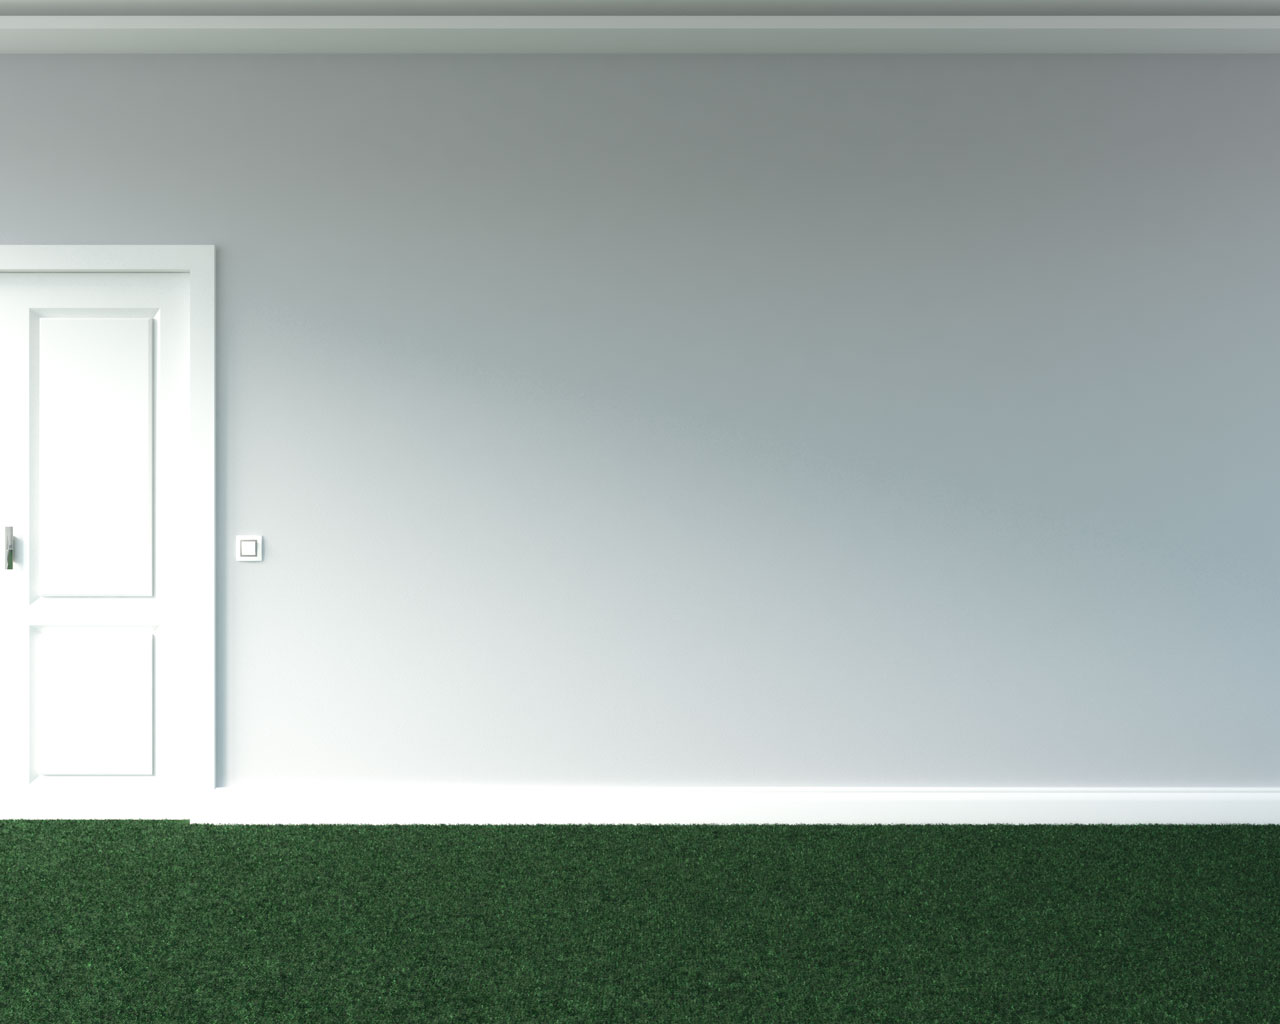 Green carpet with gray walls